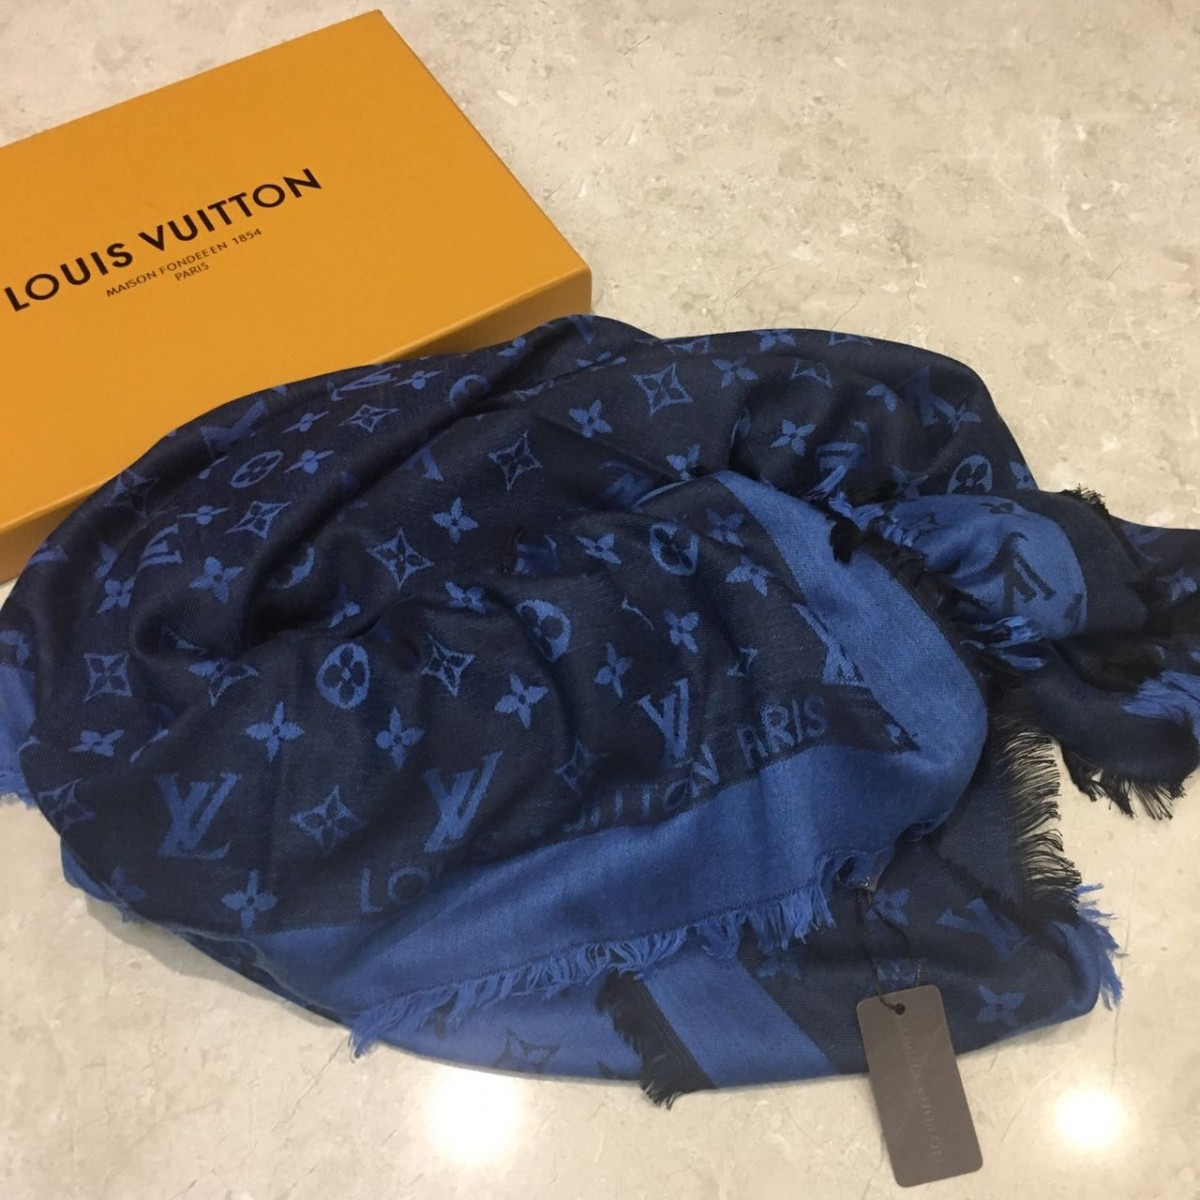 ECHARPE LOUIS VUITTON MONOGRAM ROCK SHAWL